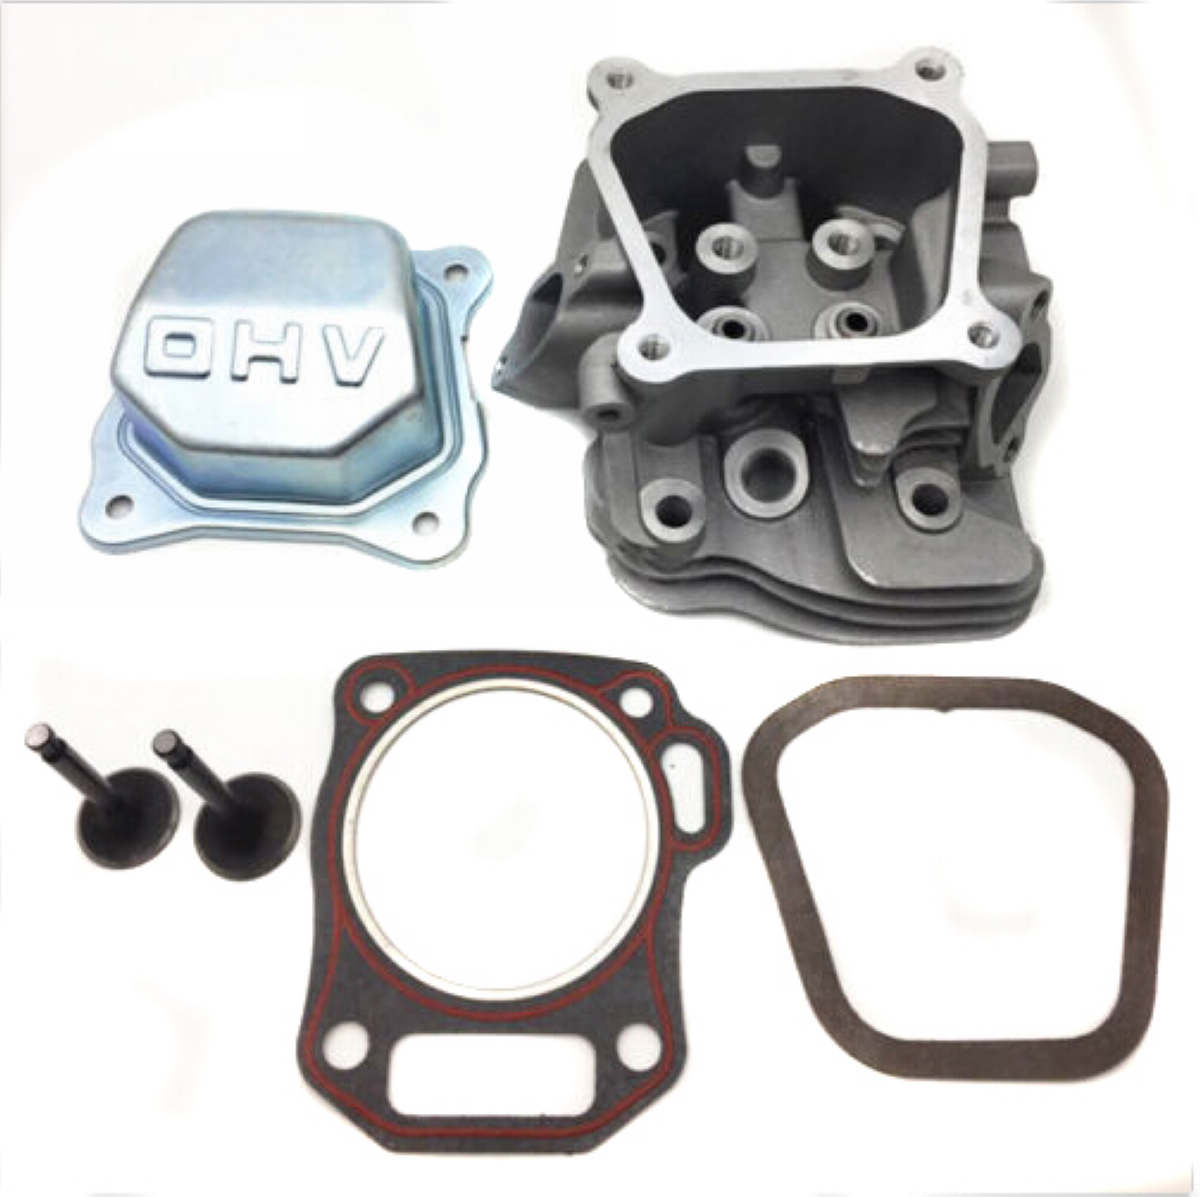 1set Cylinder Head Kit Replacement For GX200 6.5HP Engine Parts Mayitr New Arrival jiangdong engine parts for tractor the set of fuel pump repair kit for engine jd495